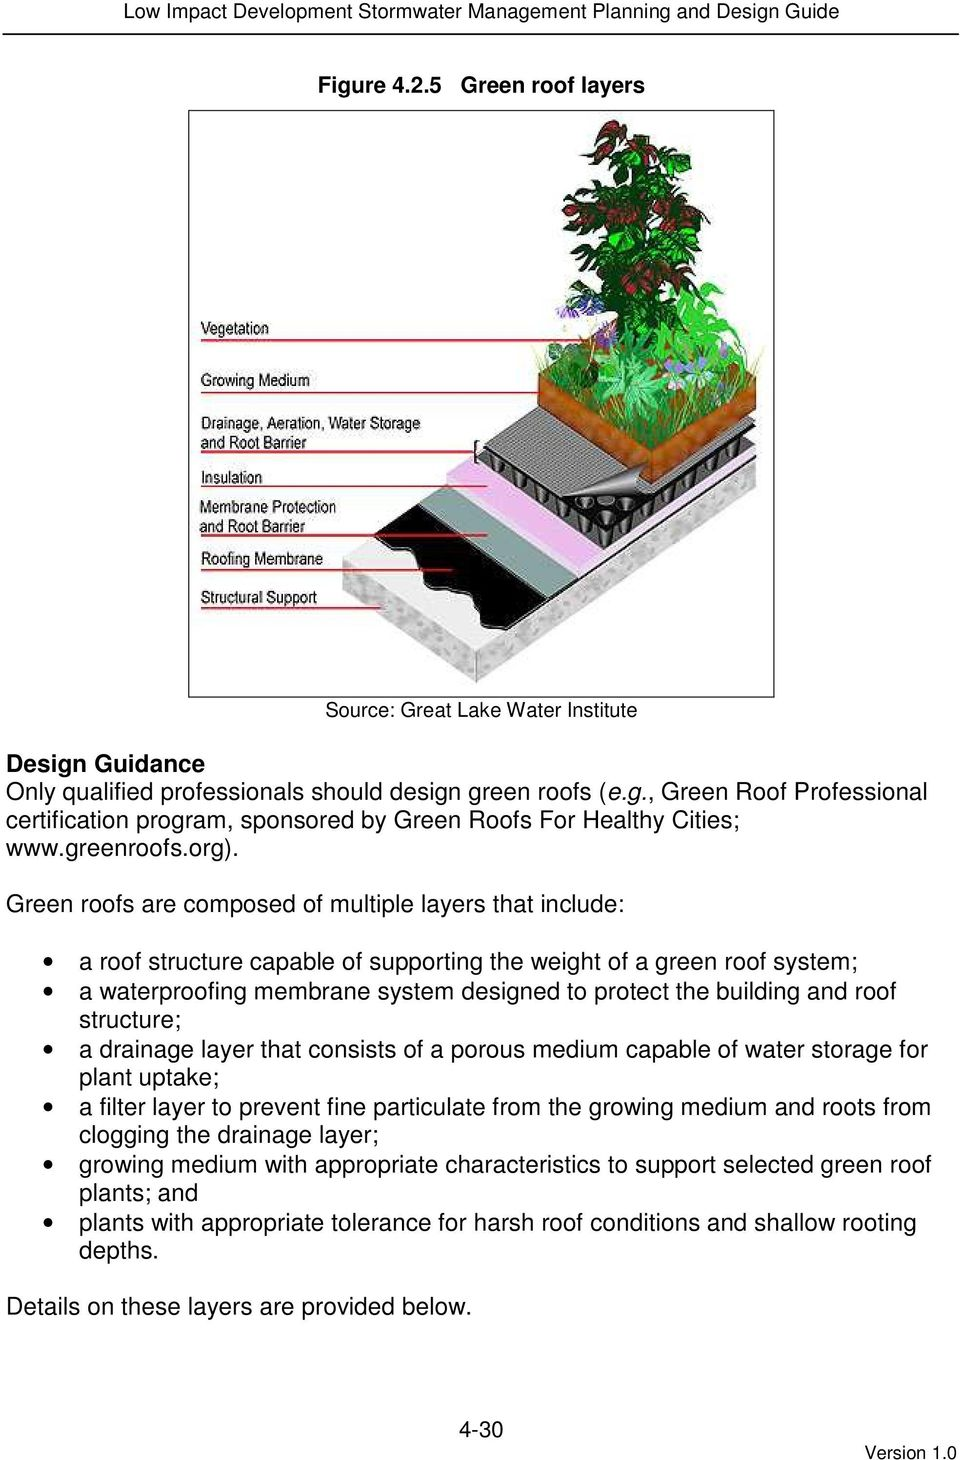 Green roofs are composed of multiple layers that include: a roof structure capable of supporting the weight of a green roof system; a waterproofing membrane system designed to protect the building